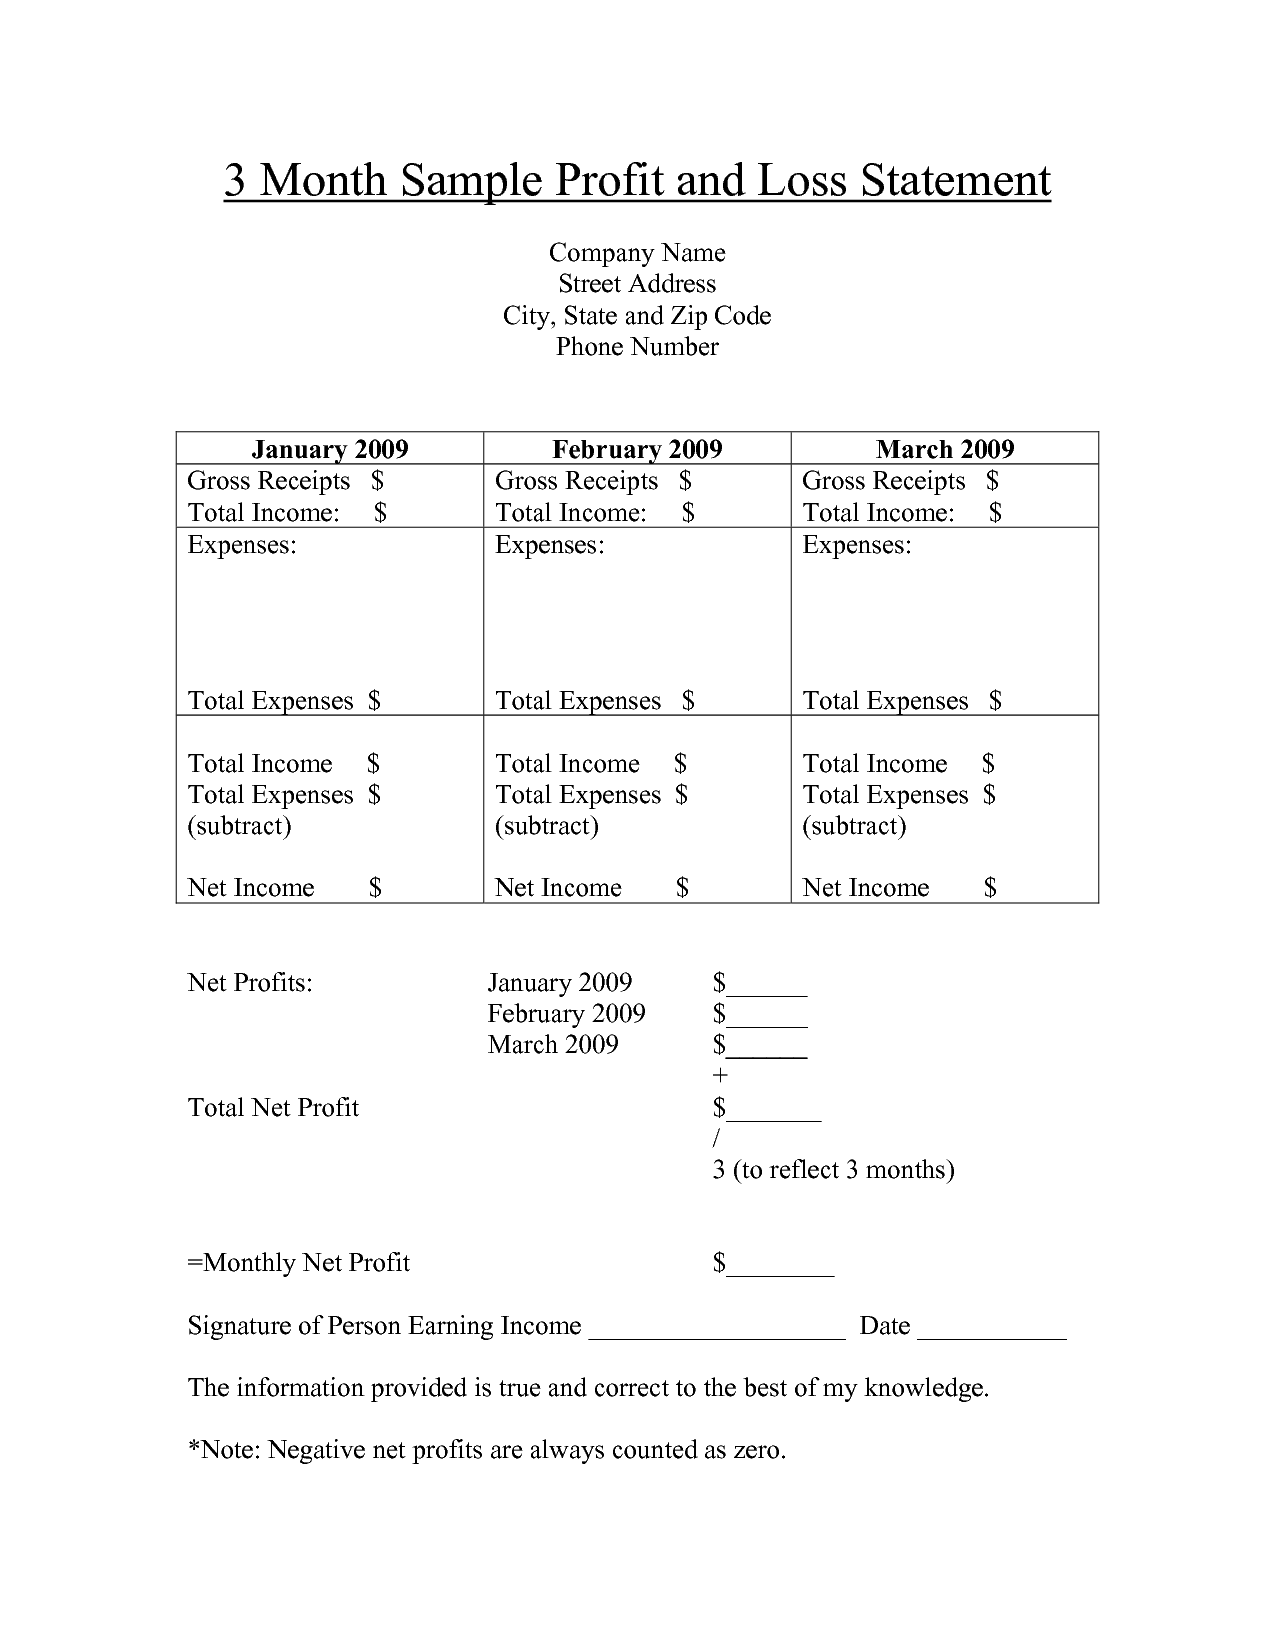 Free Profit And Loss Statement Template Profit And Loss Statement Form Printable  Month Sample Profit And .